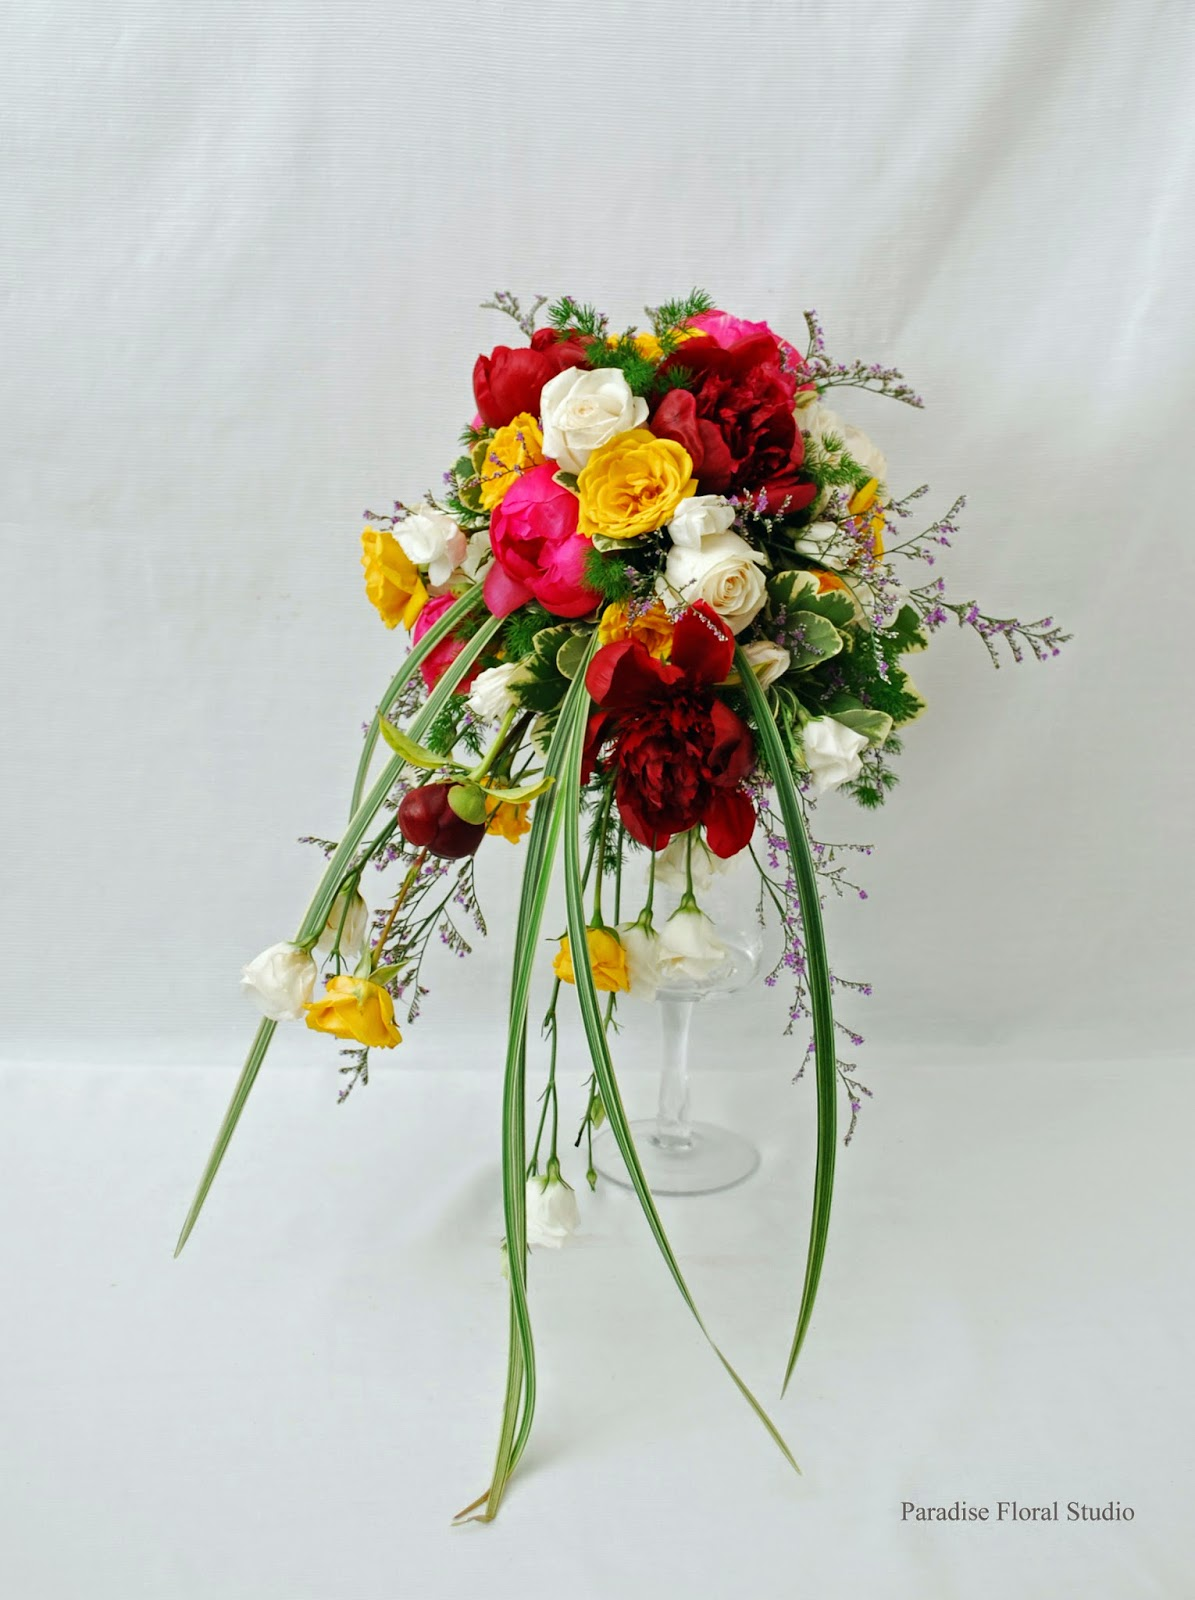 PARADISE FLORAL STUDIO Corsages Boutonnieres And More